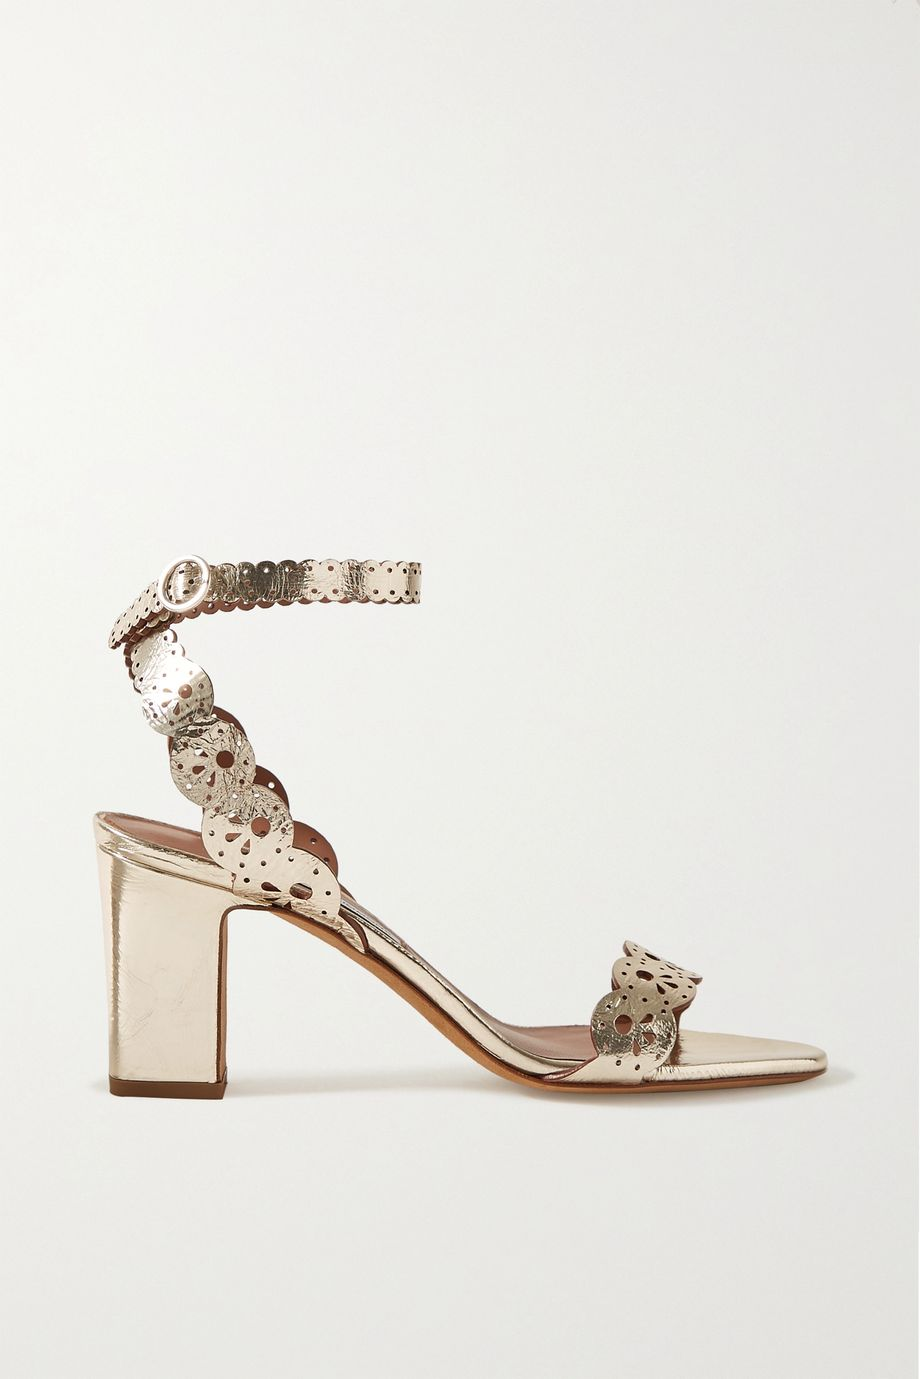 Tabitha Simmons Bobbin laser-cut metallic leather sandals